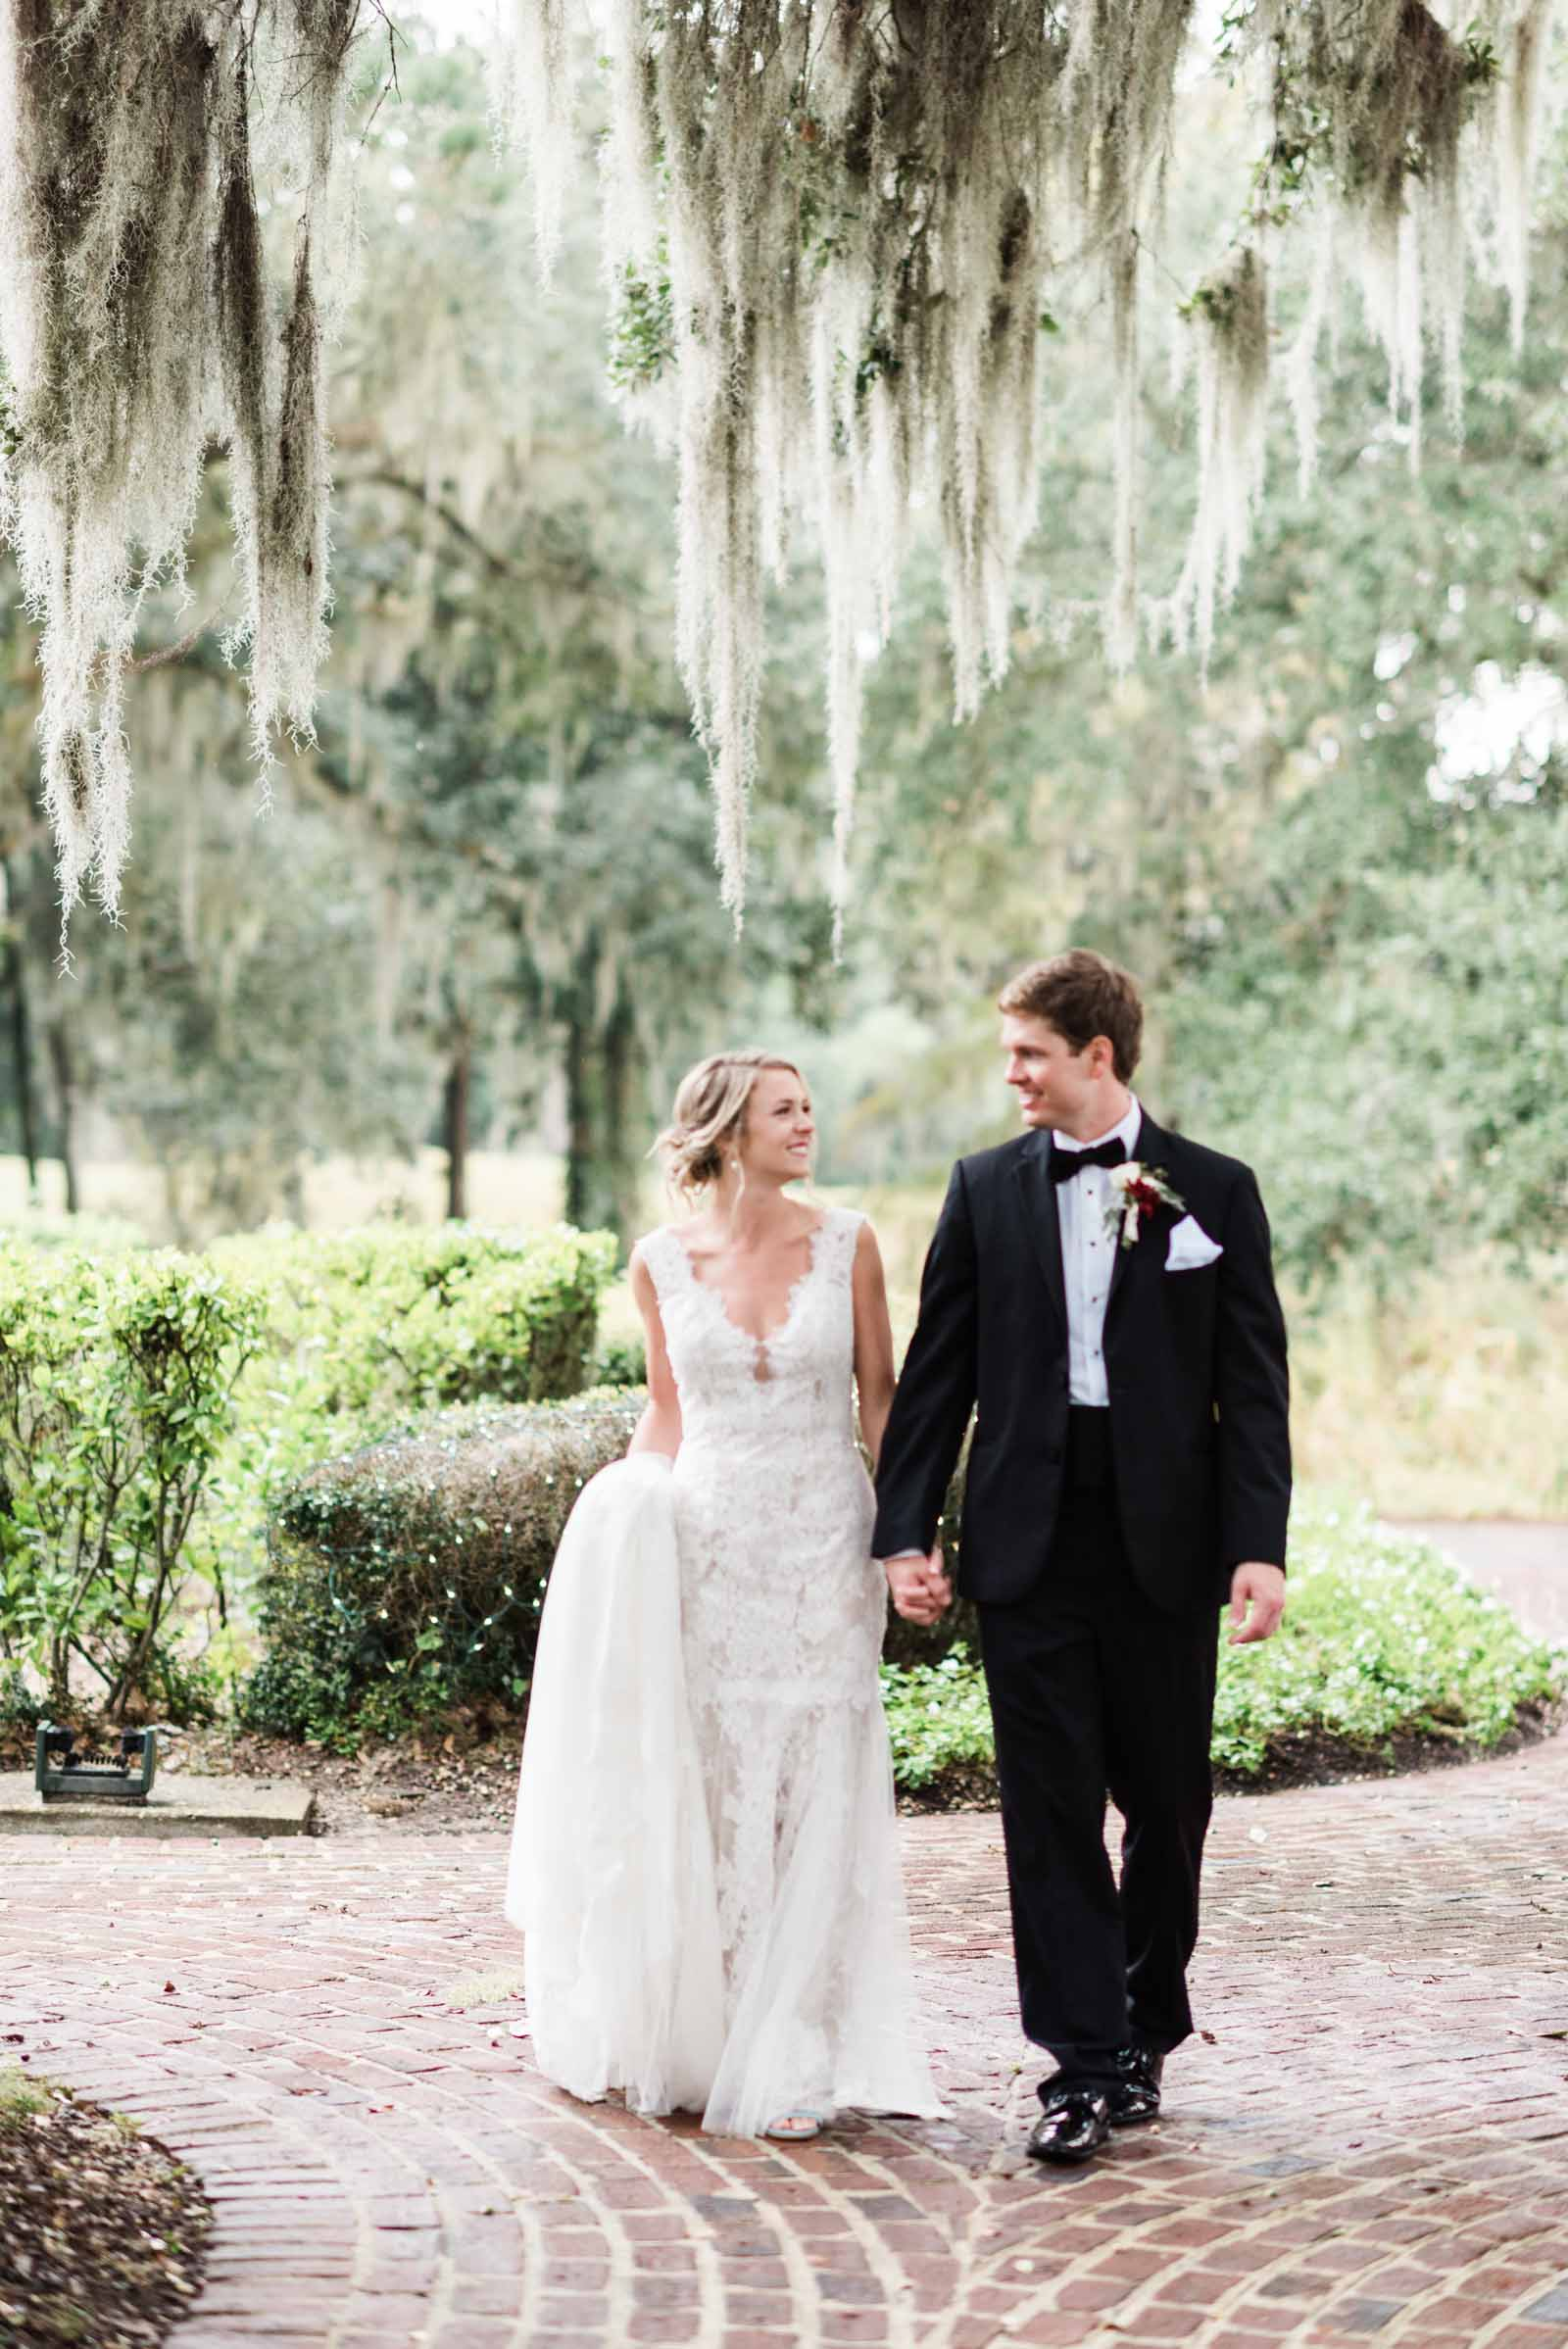 Wedding at Heritage Plantation in Pawley's Island_Markie Walden Photo-31.jpg